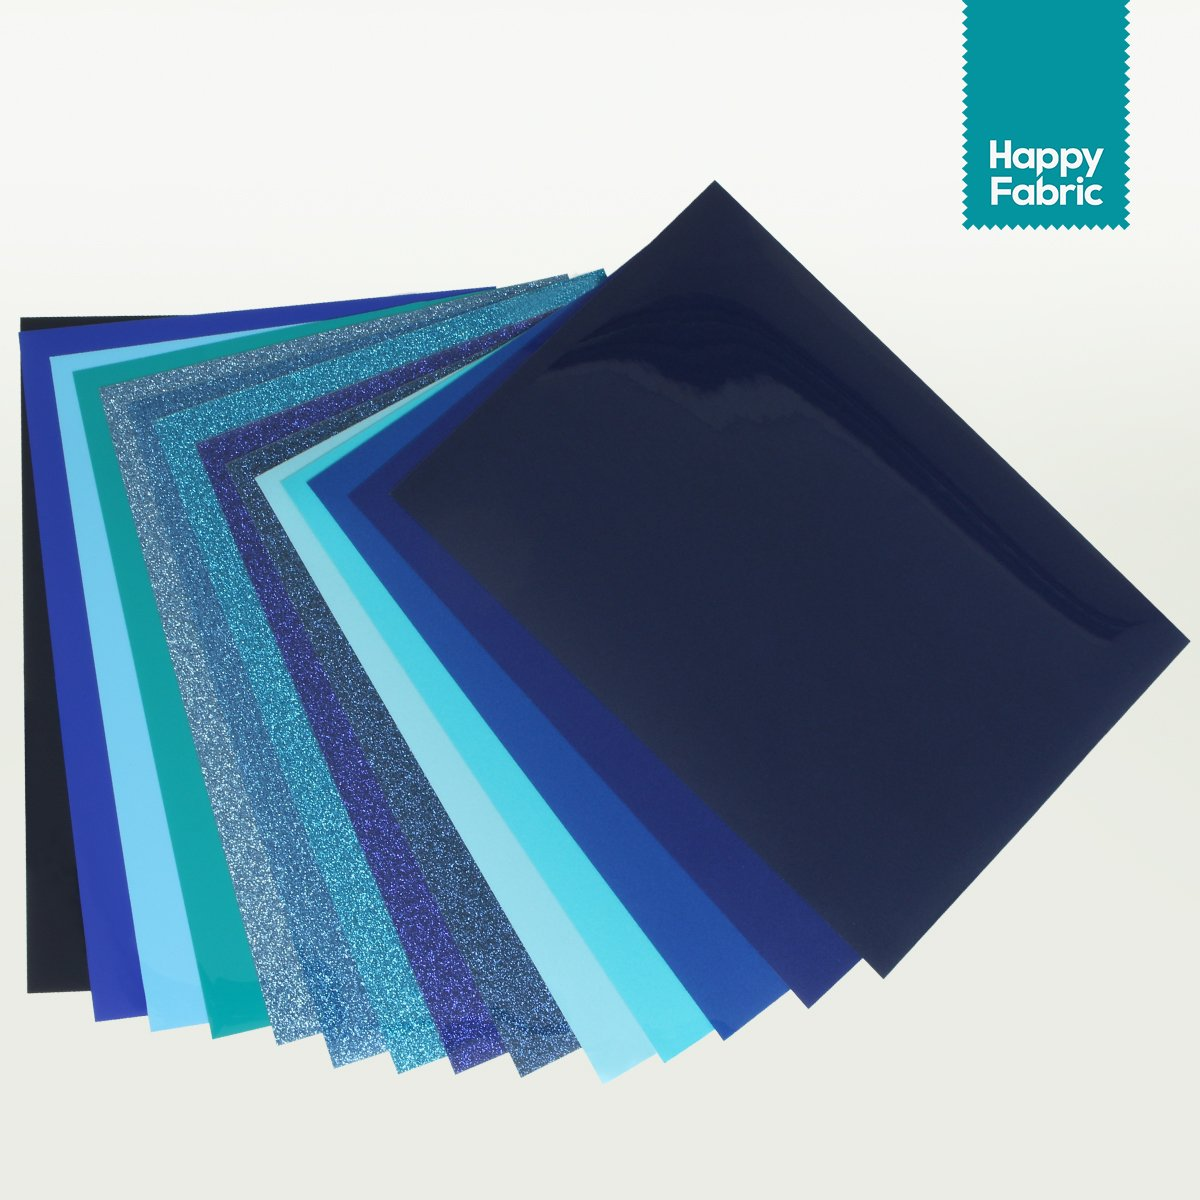 Blau Flex/Glitter/Flock Folienset HappyFabric